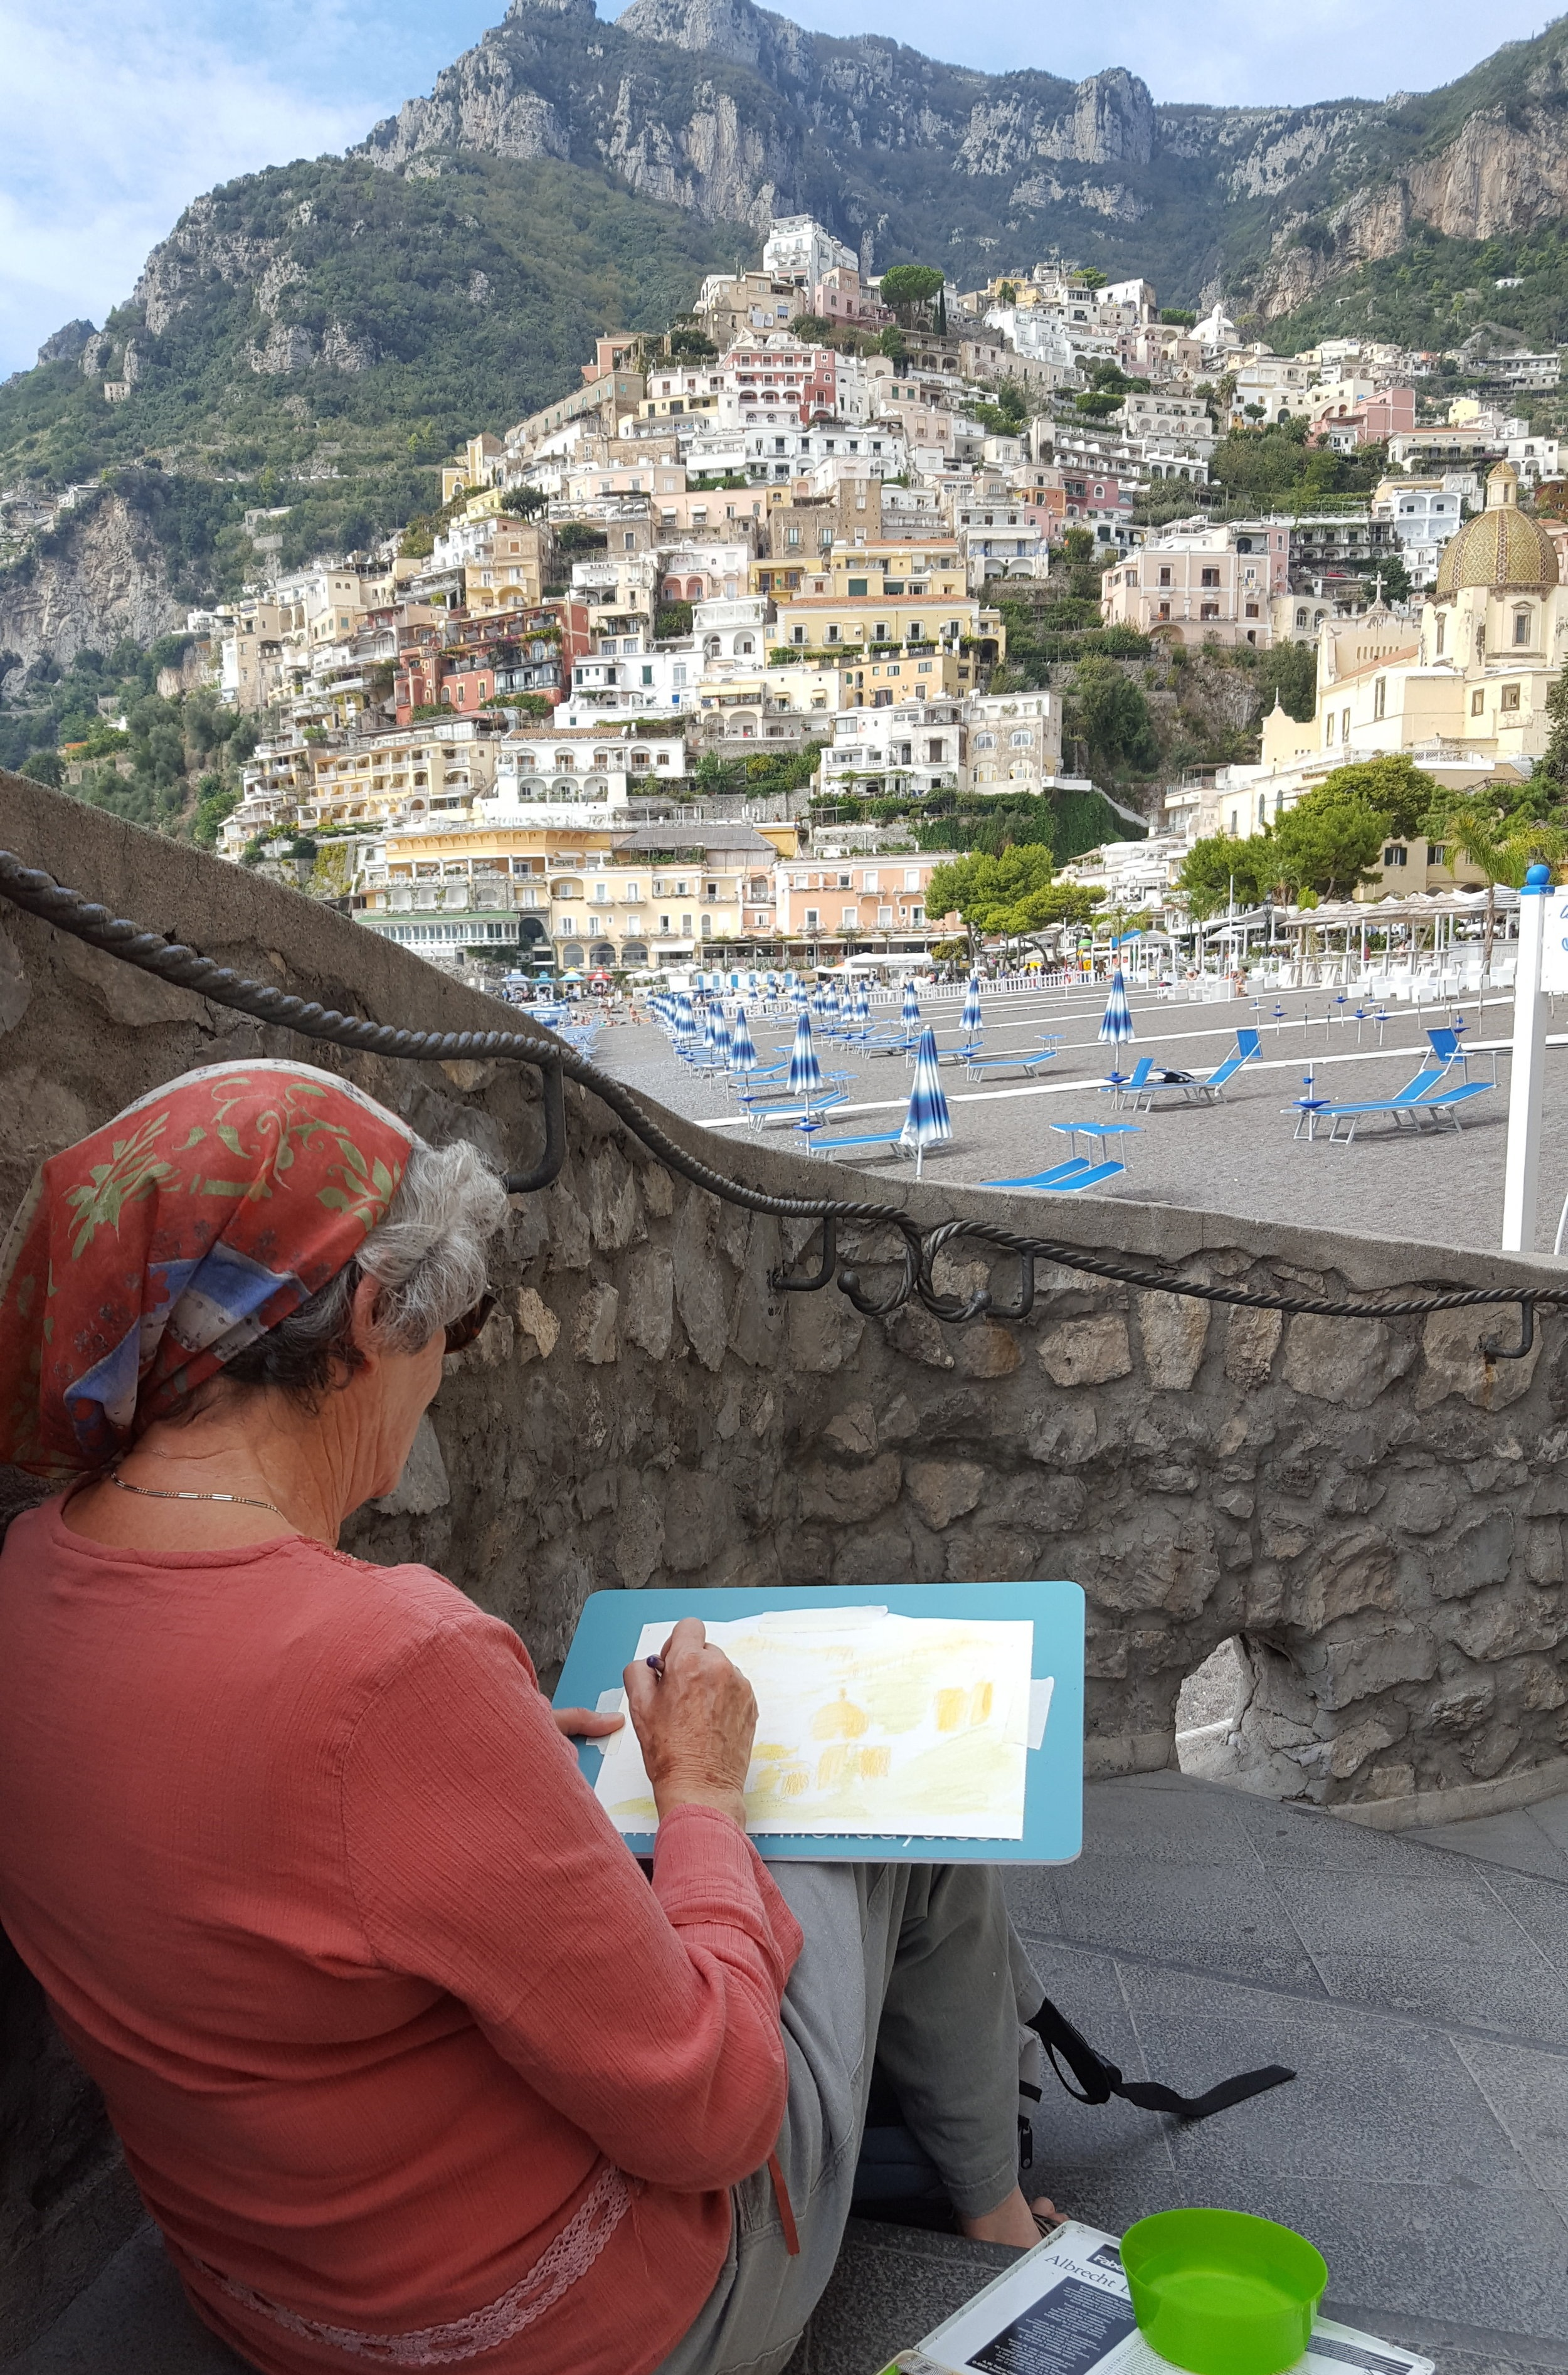 Wendy from one of our 2018 Amalfi coast group in Positano.